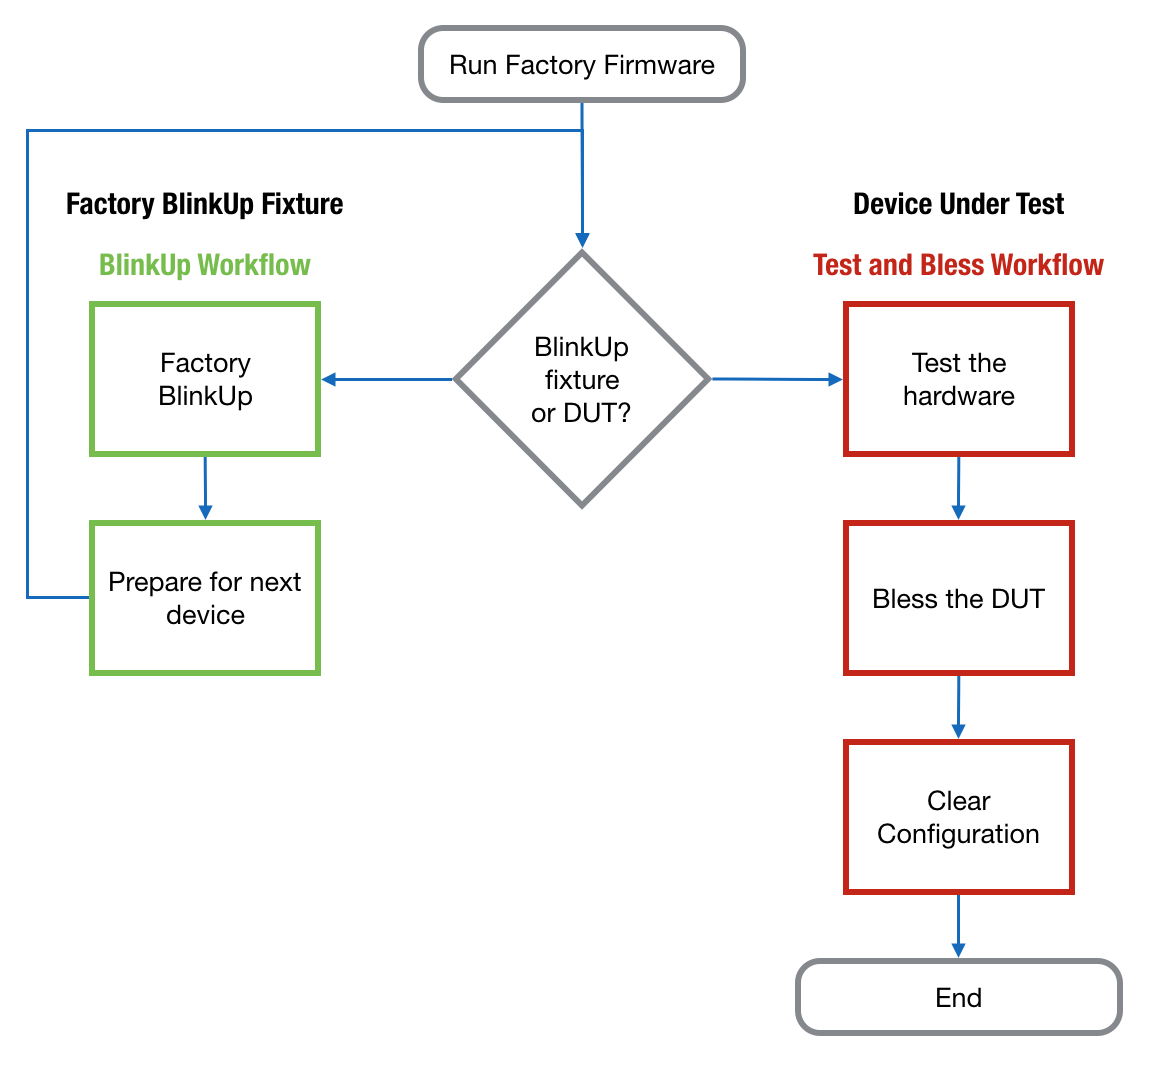 factoryfirmware_flow writing, testing and using factory firmware dev center